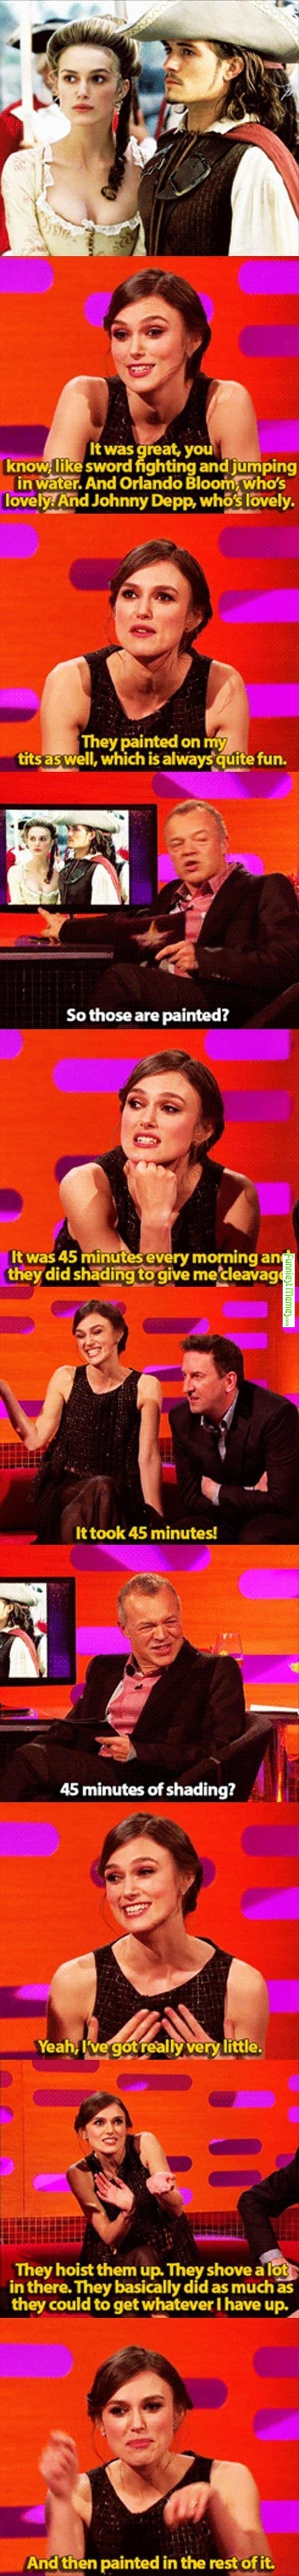 Funny Meme - [Poor Keira Knightley]  NO WONDER SHE HAS THAT EXPRESSION ON HER FACE IN THE TOP PIC!